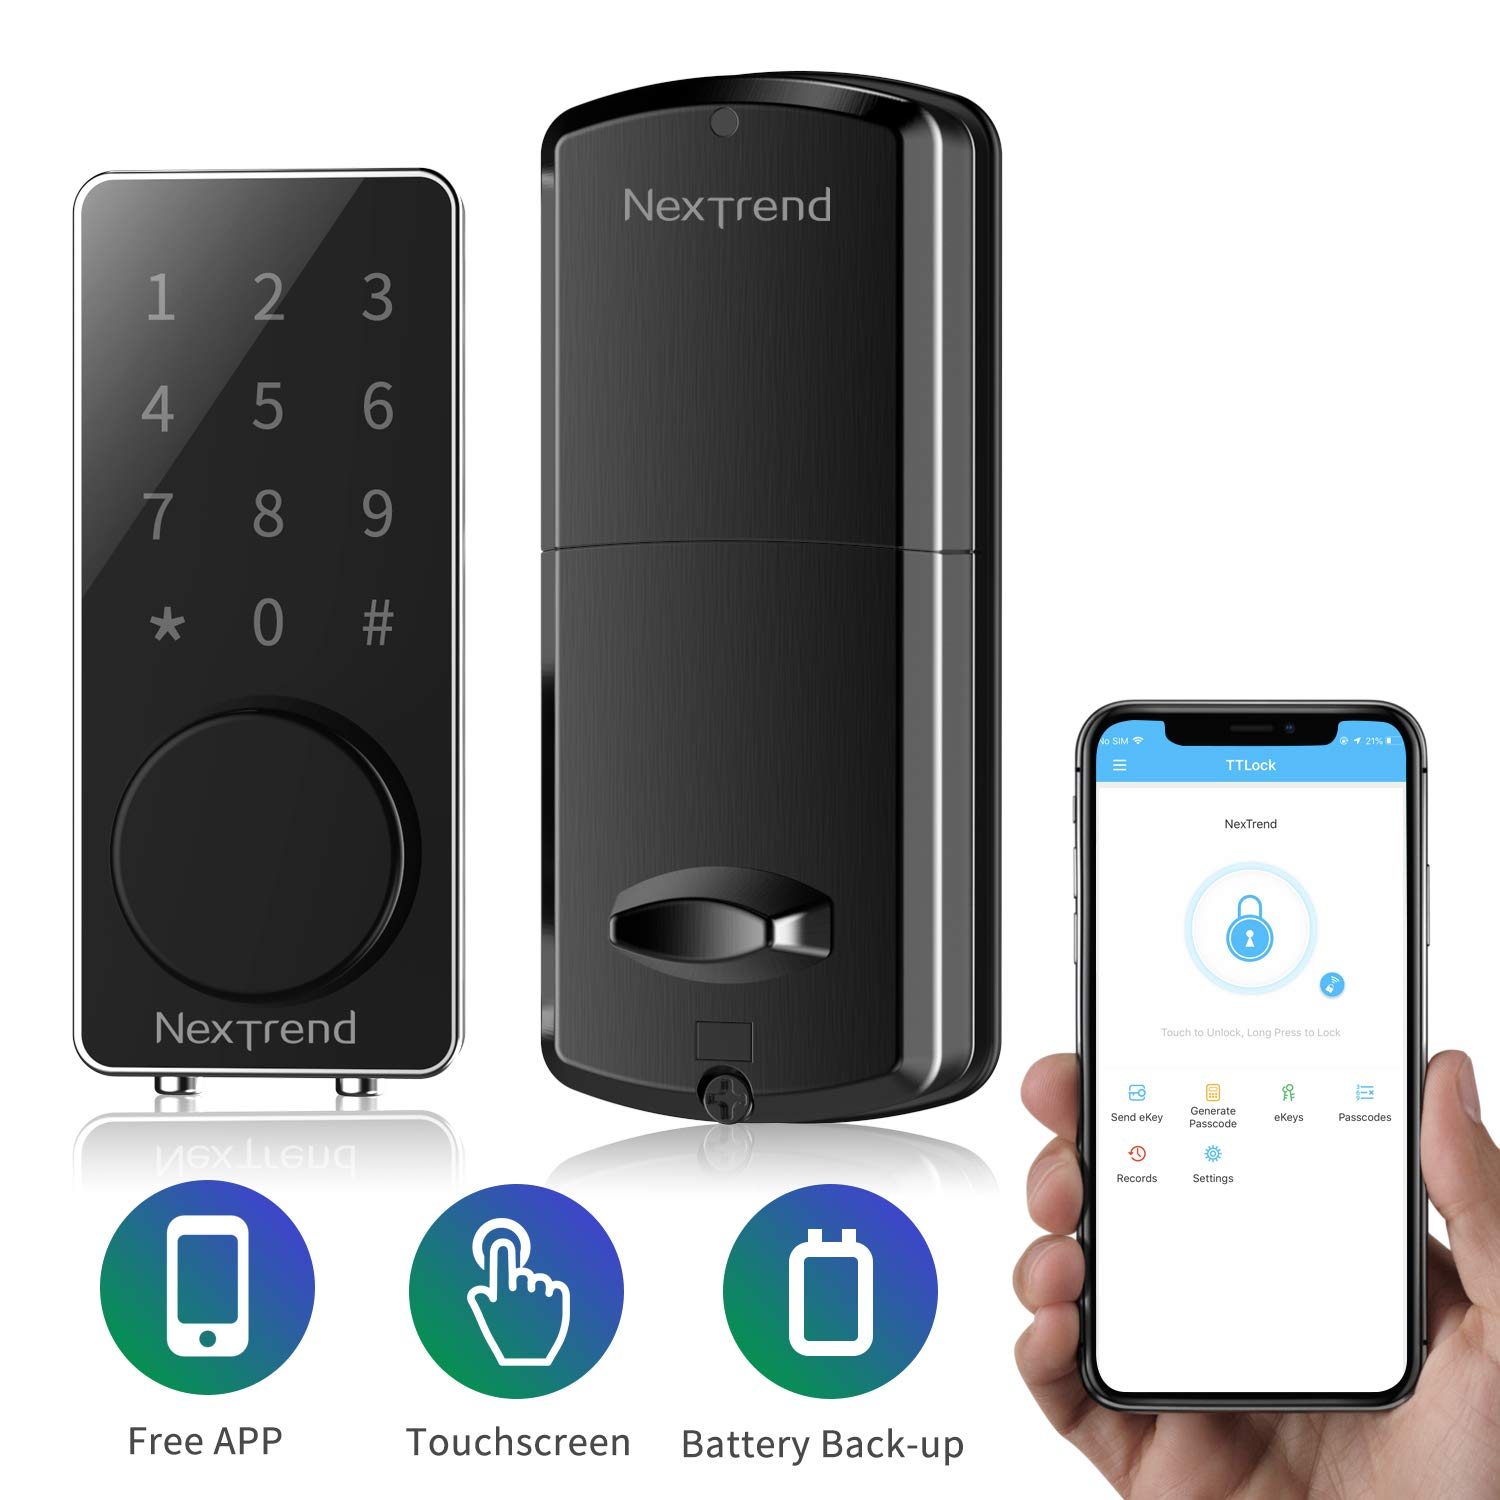 New Arrive Smart Bluetooth Lock, NexTrend Smart Deadbolt Door Lock Keyless, Touchscreen Keypad, Auto Lock, Send Ekeys, Free APP Monitoring, Easy to Install for Home, Hotel, Apartment, Black